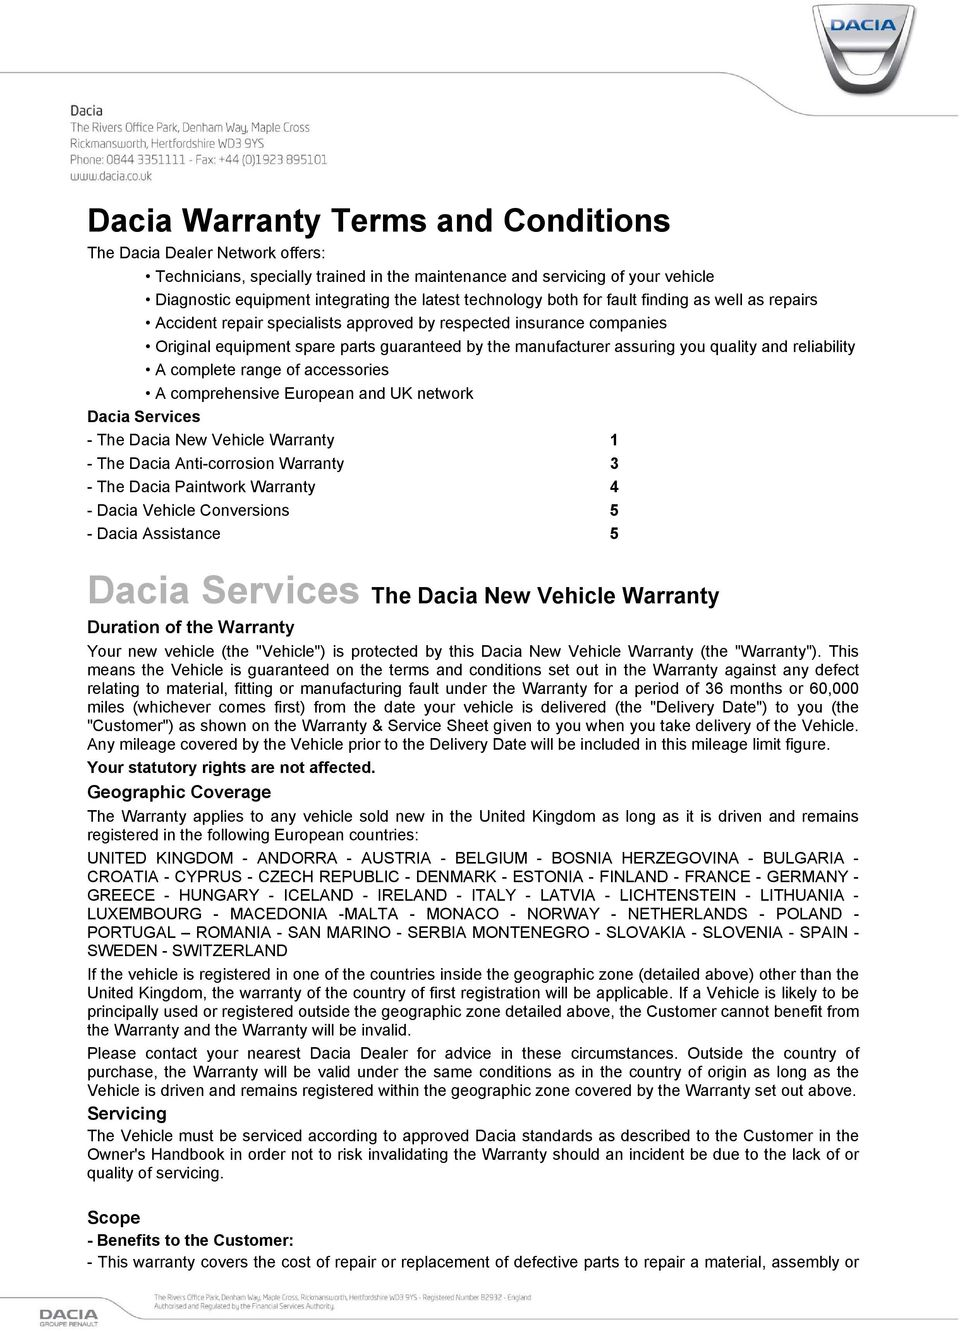 quality and reliability A complete range of accessories A comprehensive European and UK network Dacia Services - The Dacia New Vehicle Warranty 1 - The Dacia Anti-corrosion Warranty 3 - The Dacia